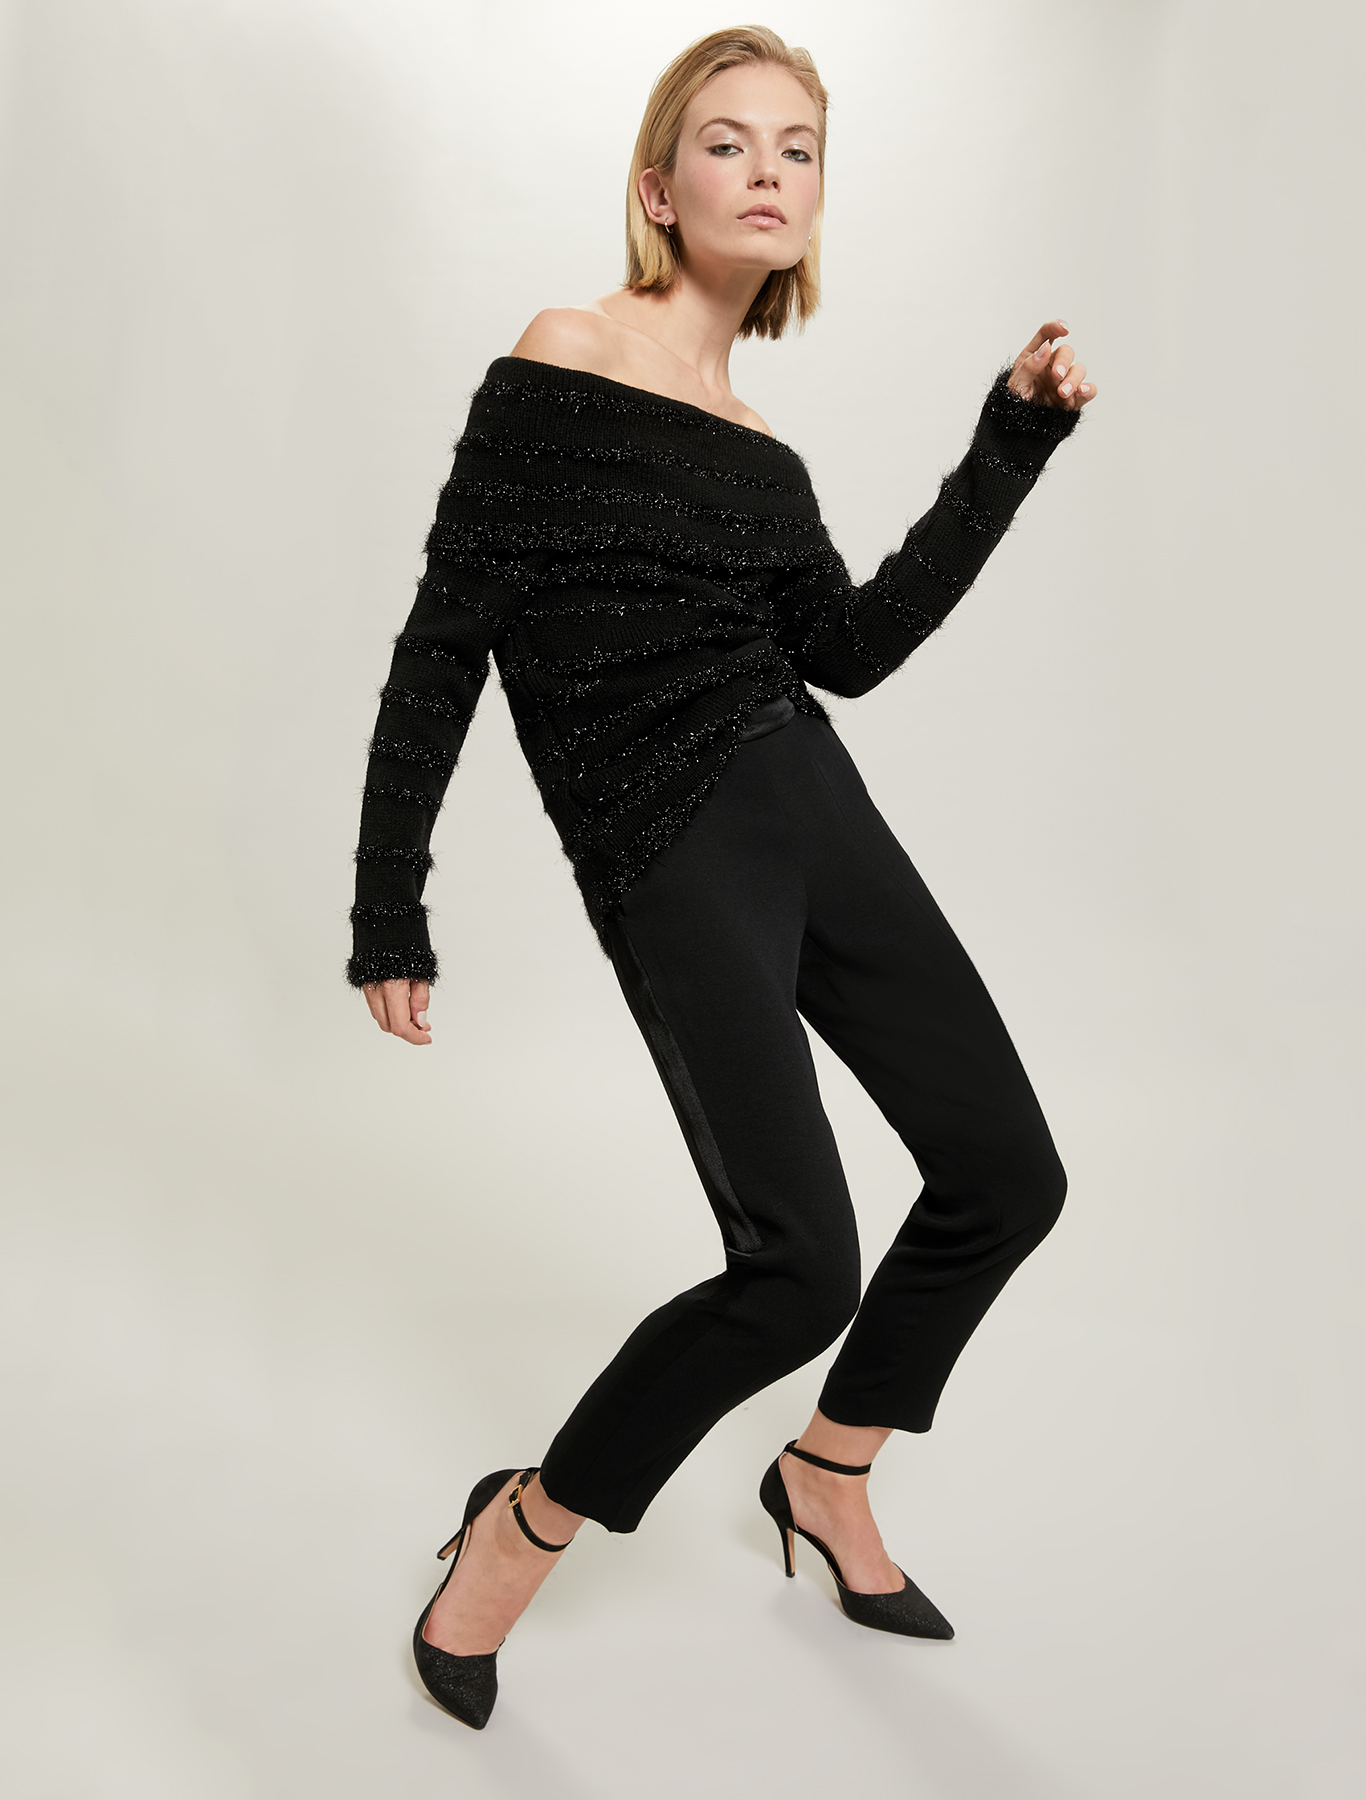 3D-striped jumper - black - pennyblack